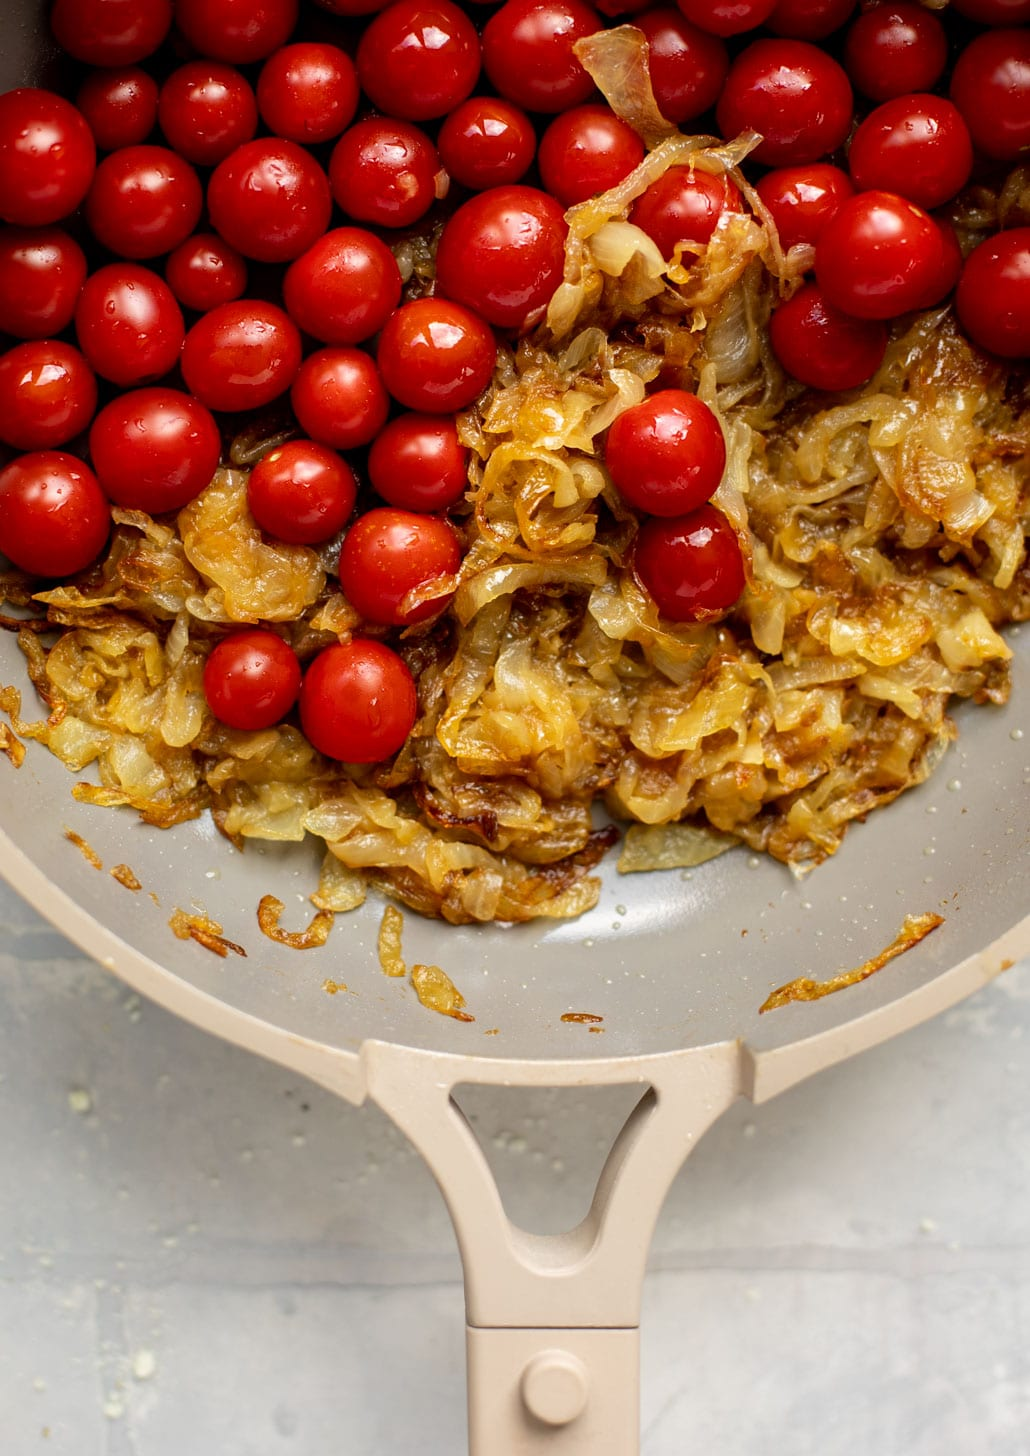 caramelized onions and cherry tomatoes